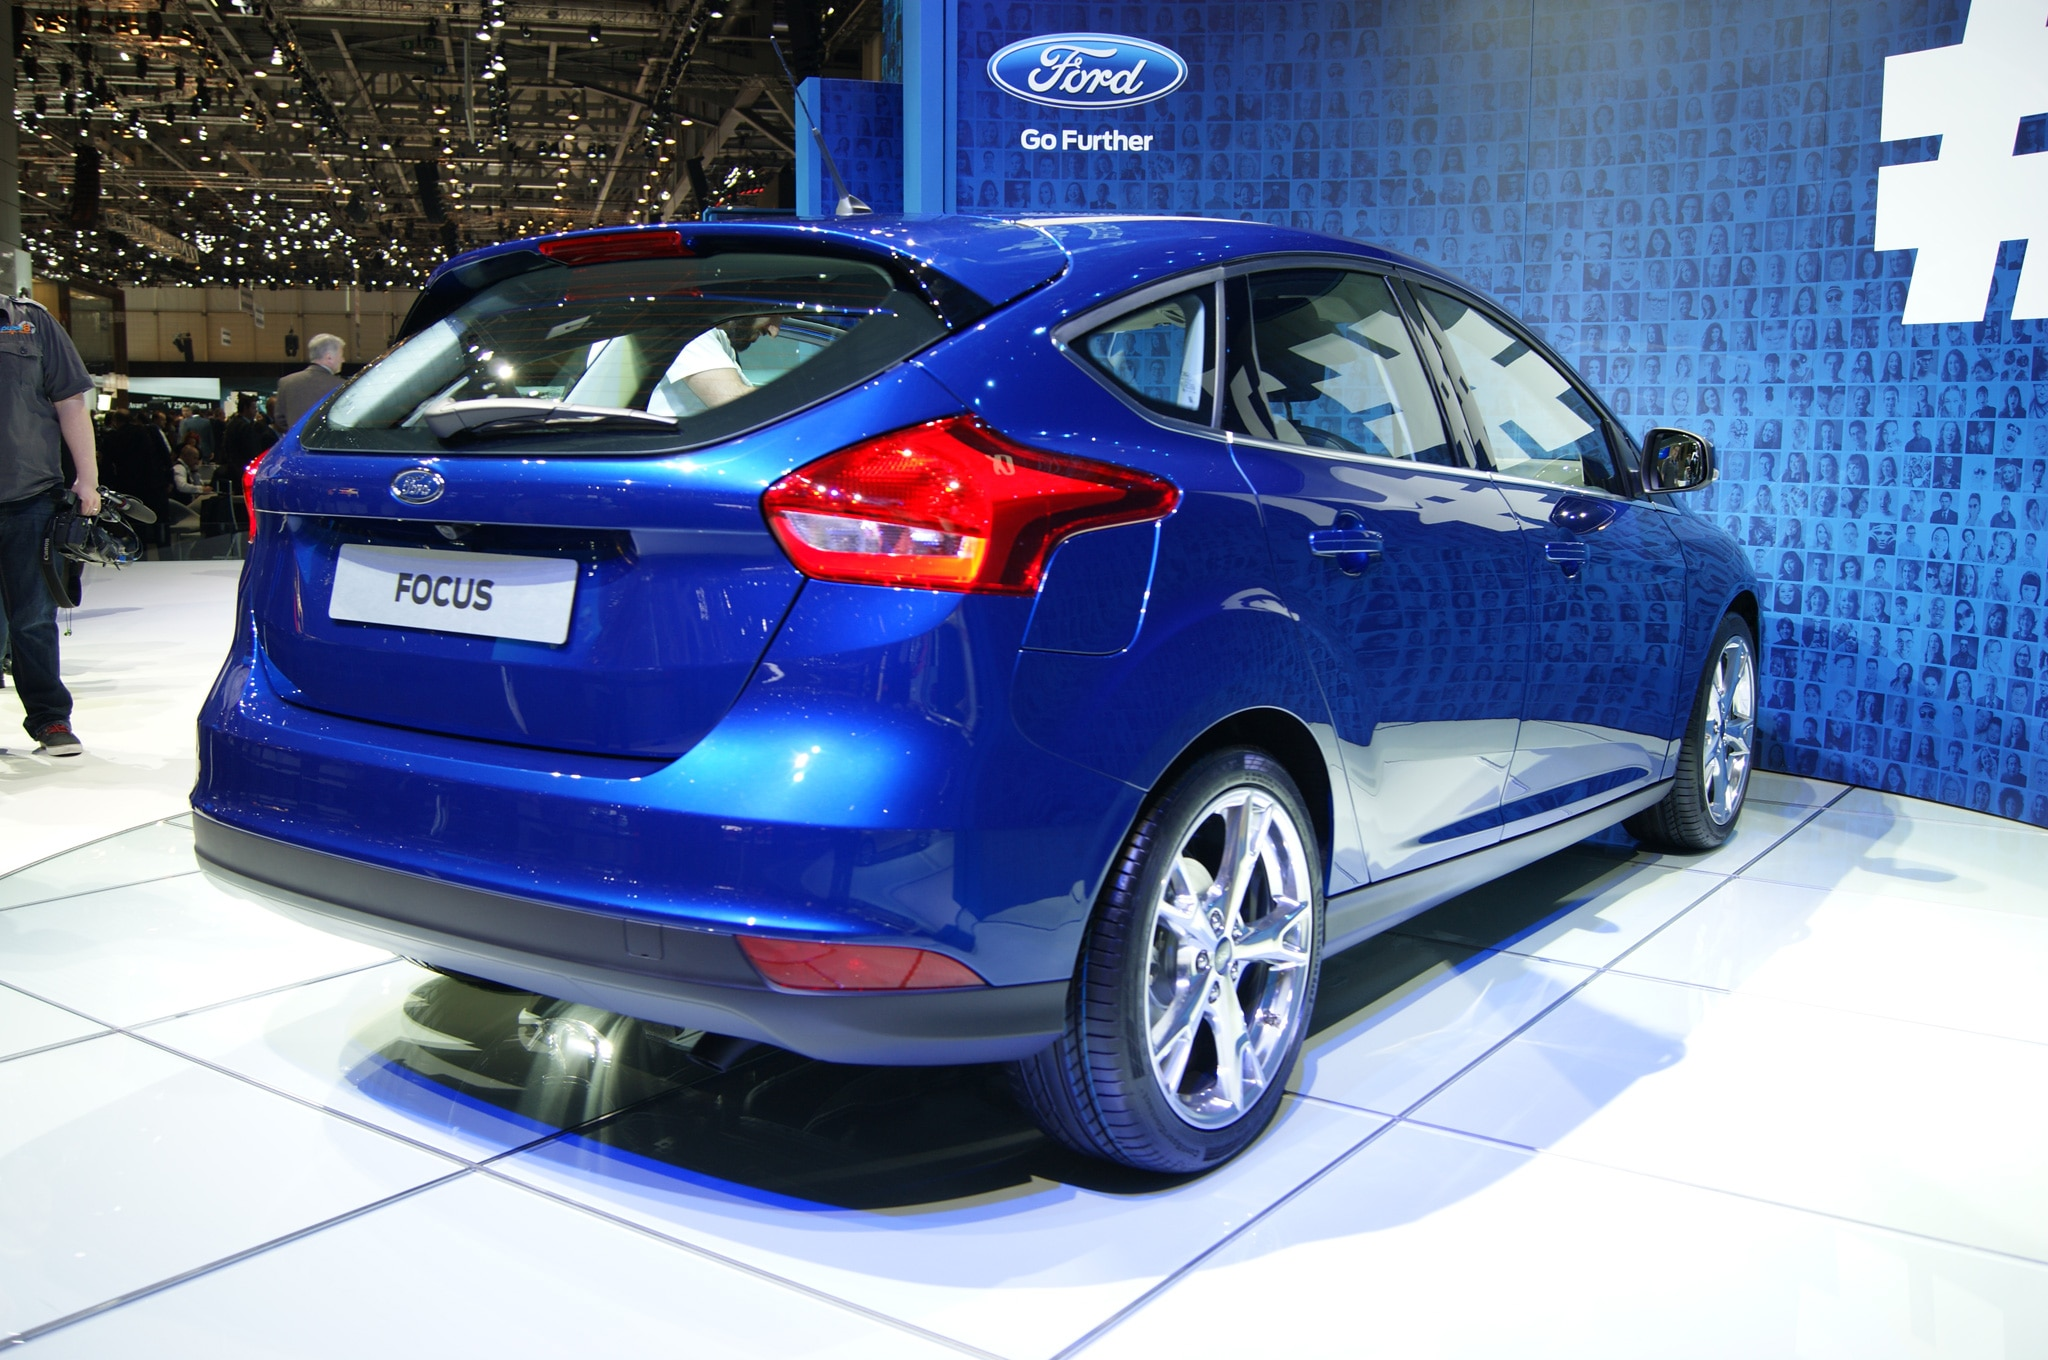 2015 ford focus hatchback at geneva 2014 rear view